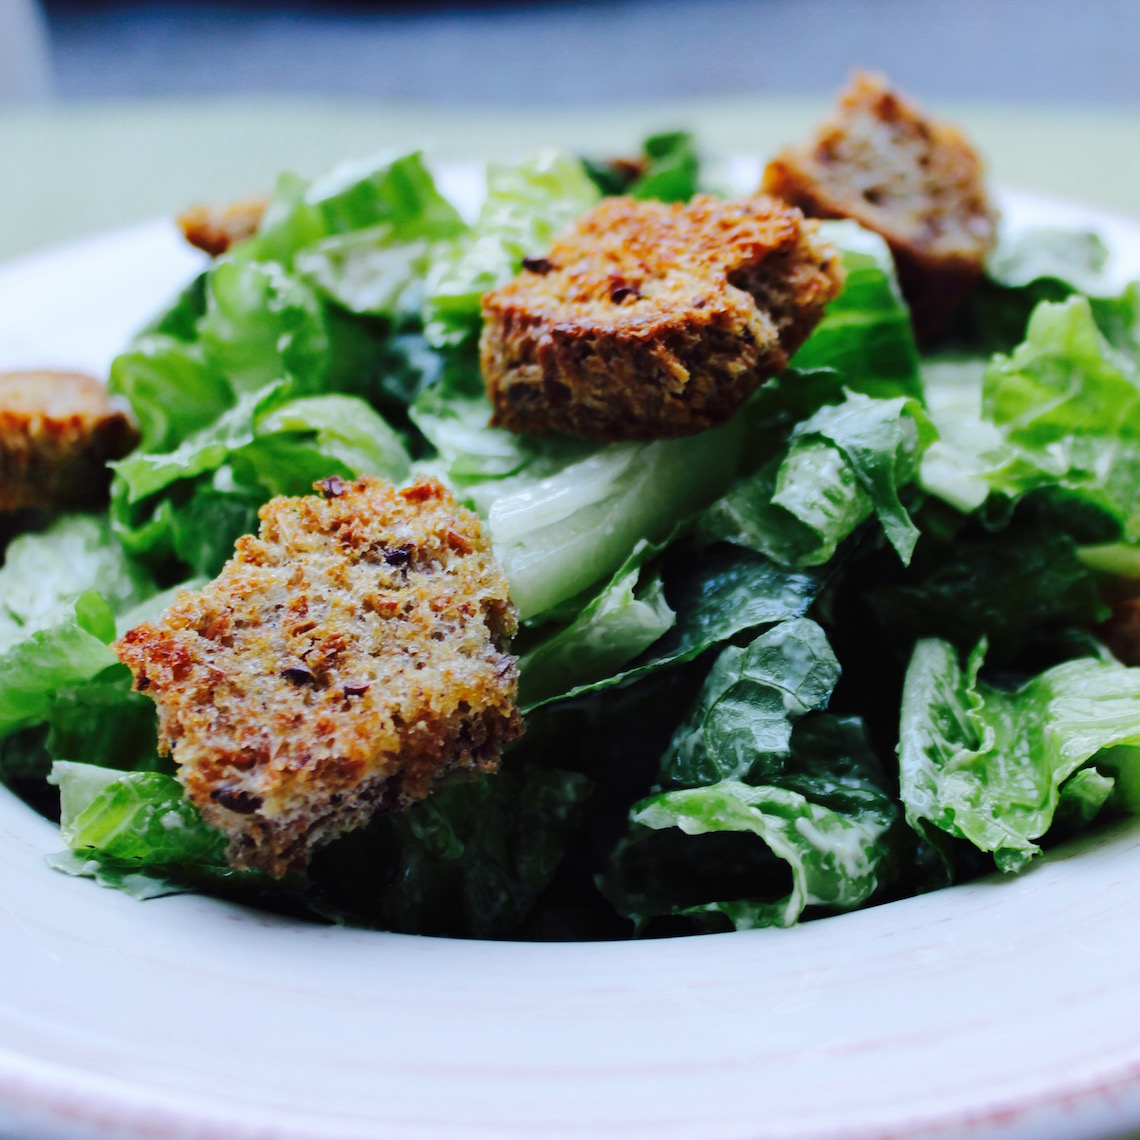 The Best Tasting Caeser Salad Ever with Maple Croutons